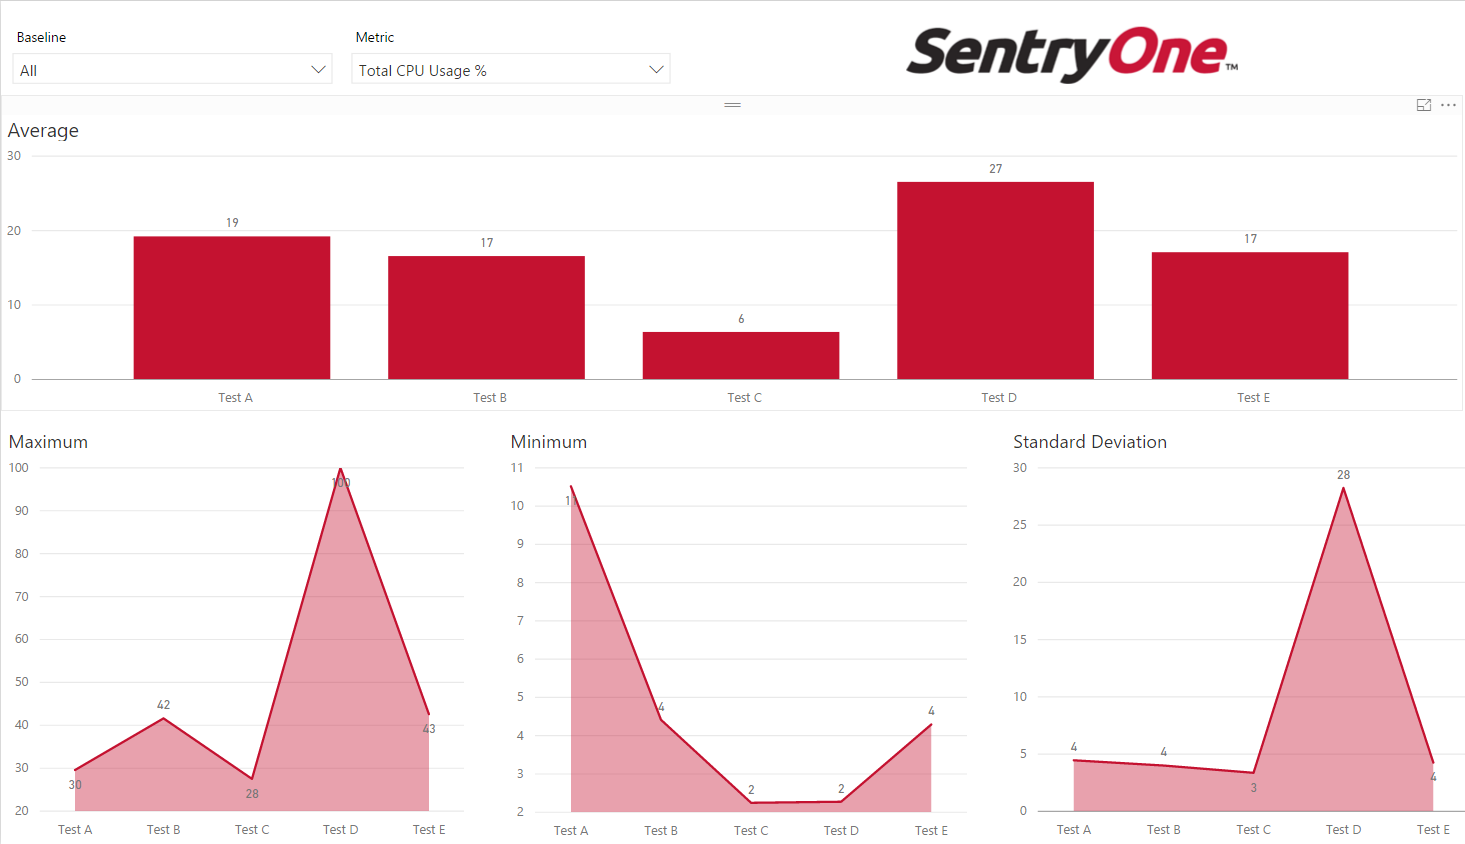 A Power BI Dashboard Comparing Multiple Baselines in SentryOne